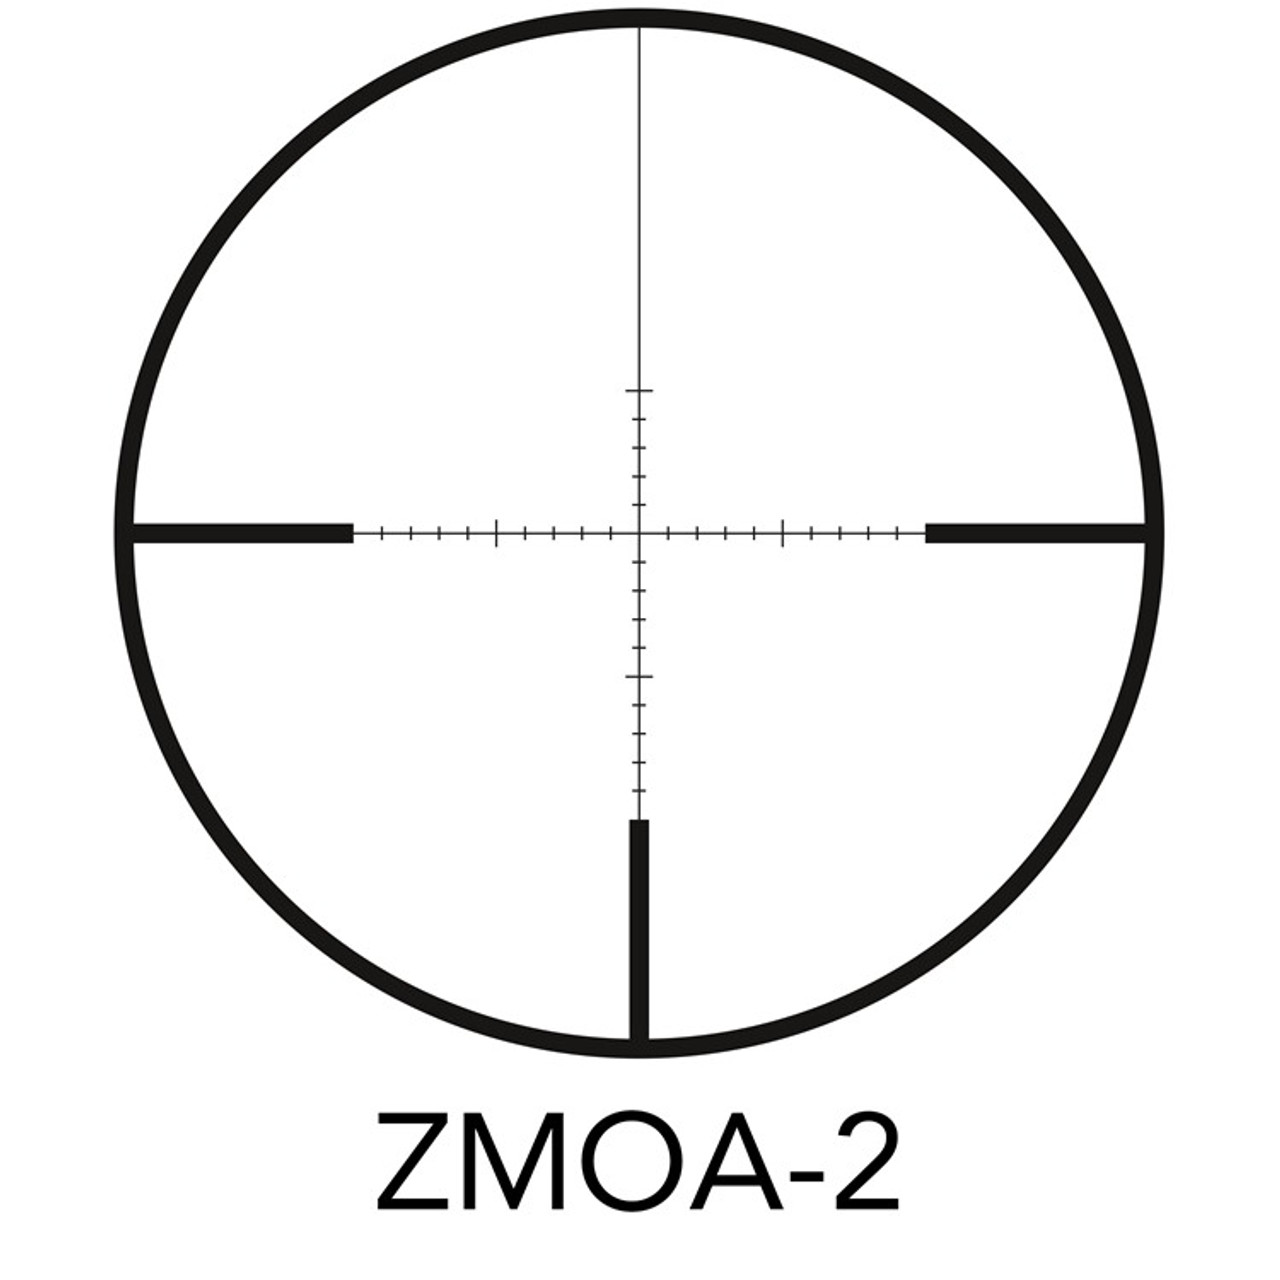 Conquest V4 4-16x44 ZMOA-2 Riflescope by ZEISS